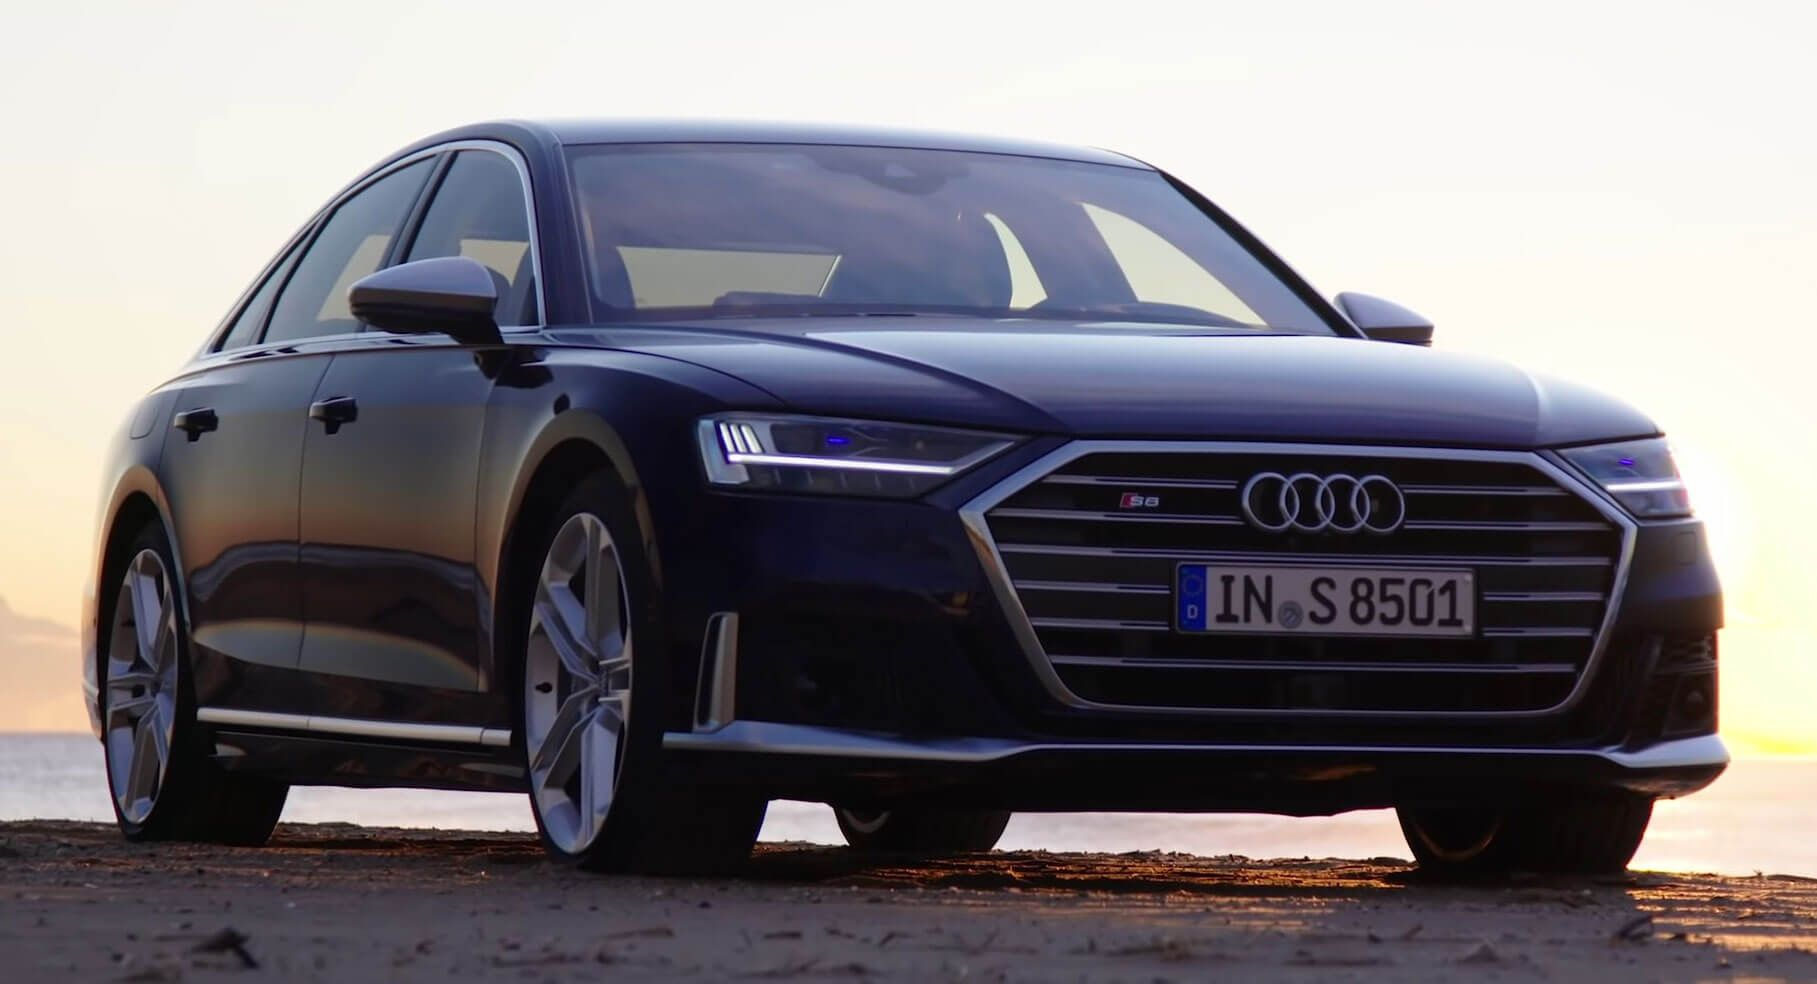 Audi A8 2020 The 4th Generation Of Audi S Flagship Audi A8 Audi Car In The World